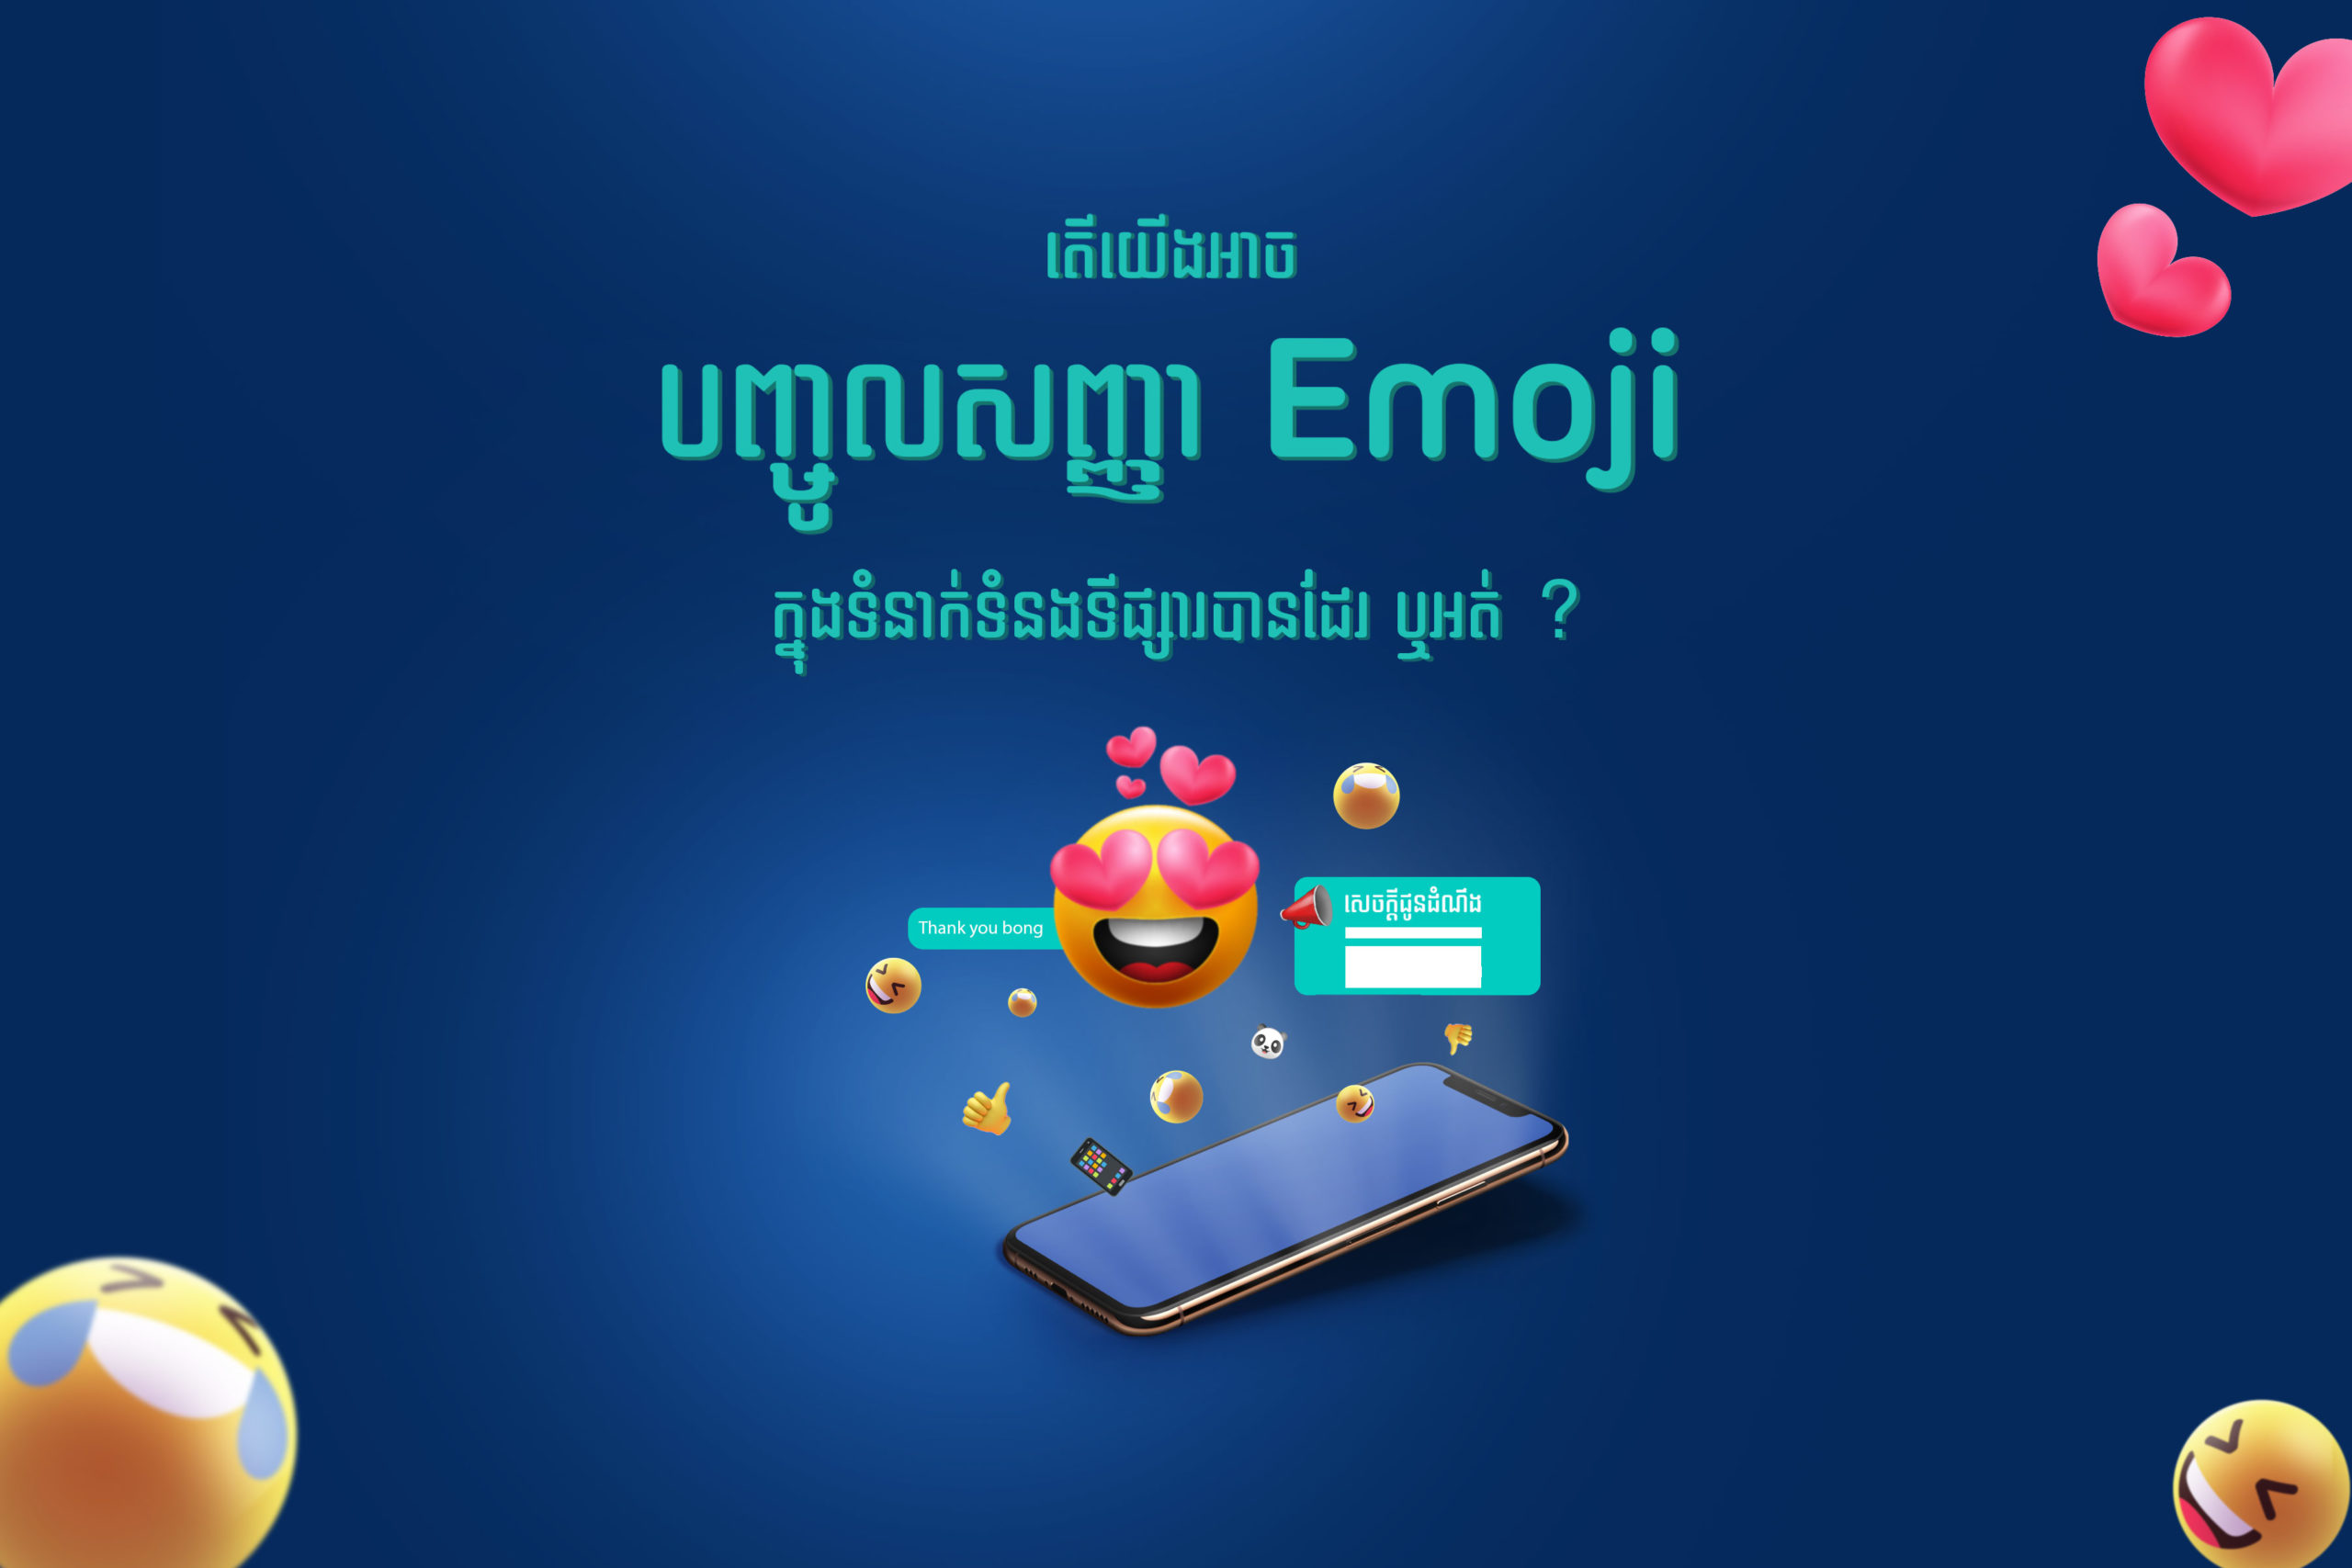 Can We Incorporate Emoji in Marketing Communications or Not?